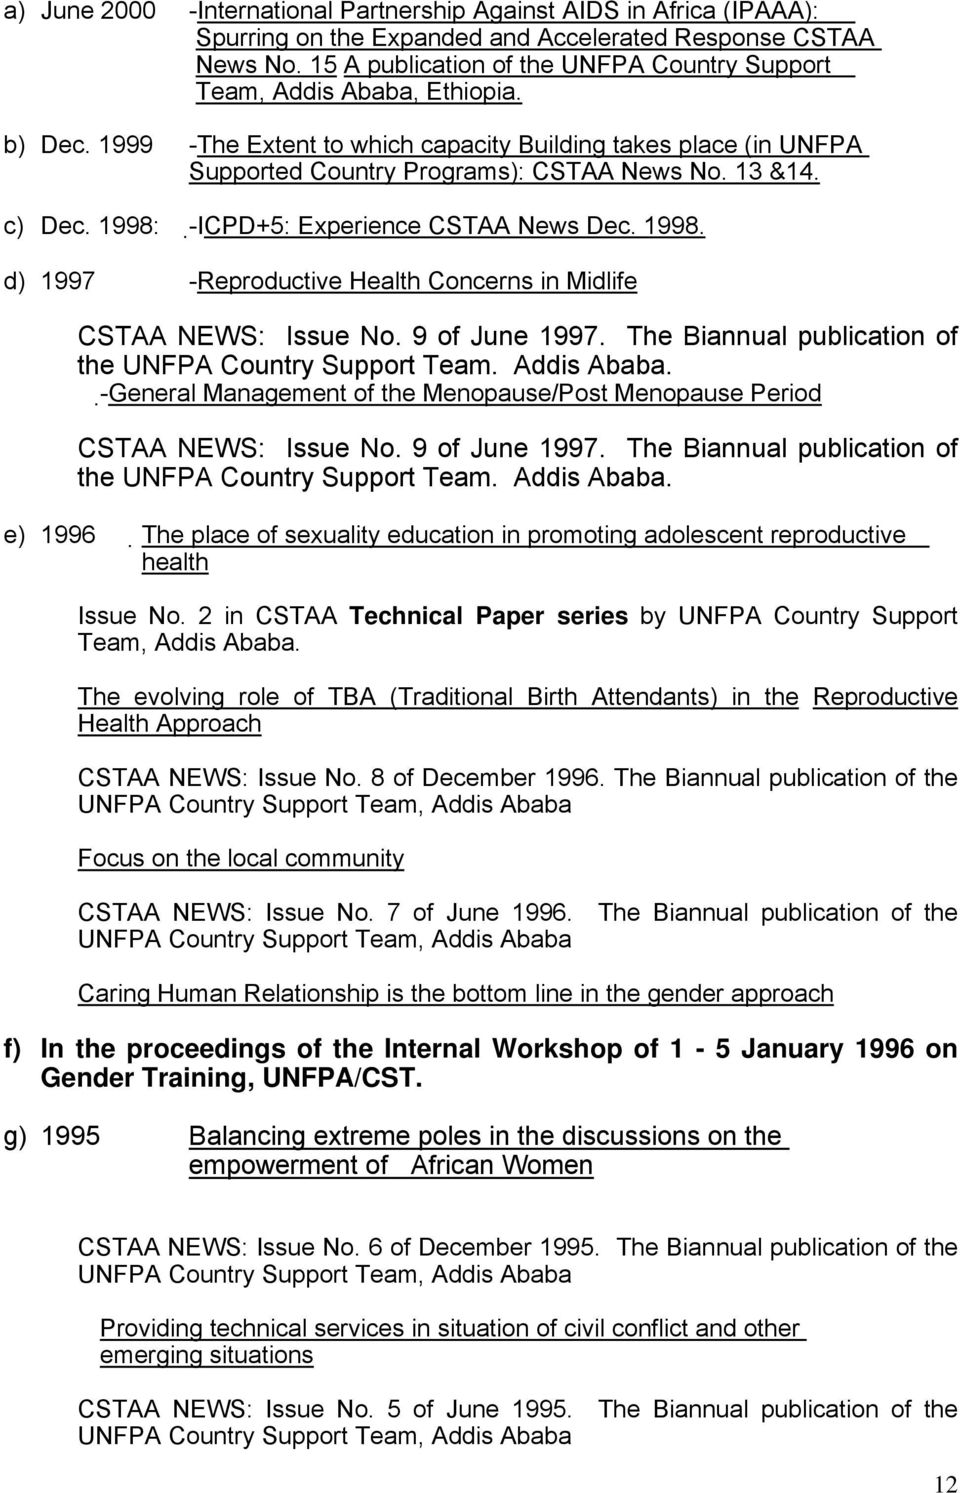 c) Dec. 1998: - ICPD+5: Experience CSTAA News Dec. 1998. d) 1997 -Reproductive Health Concerns in Midlife CSTAA NEWS: Issue No. 9 of June 1997.